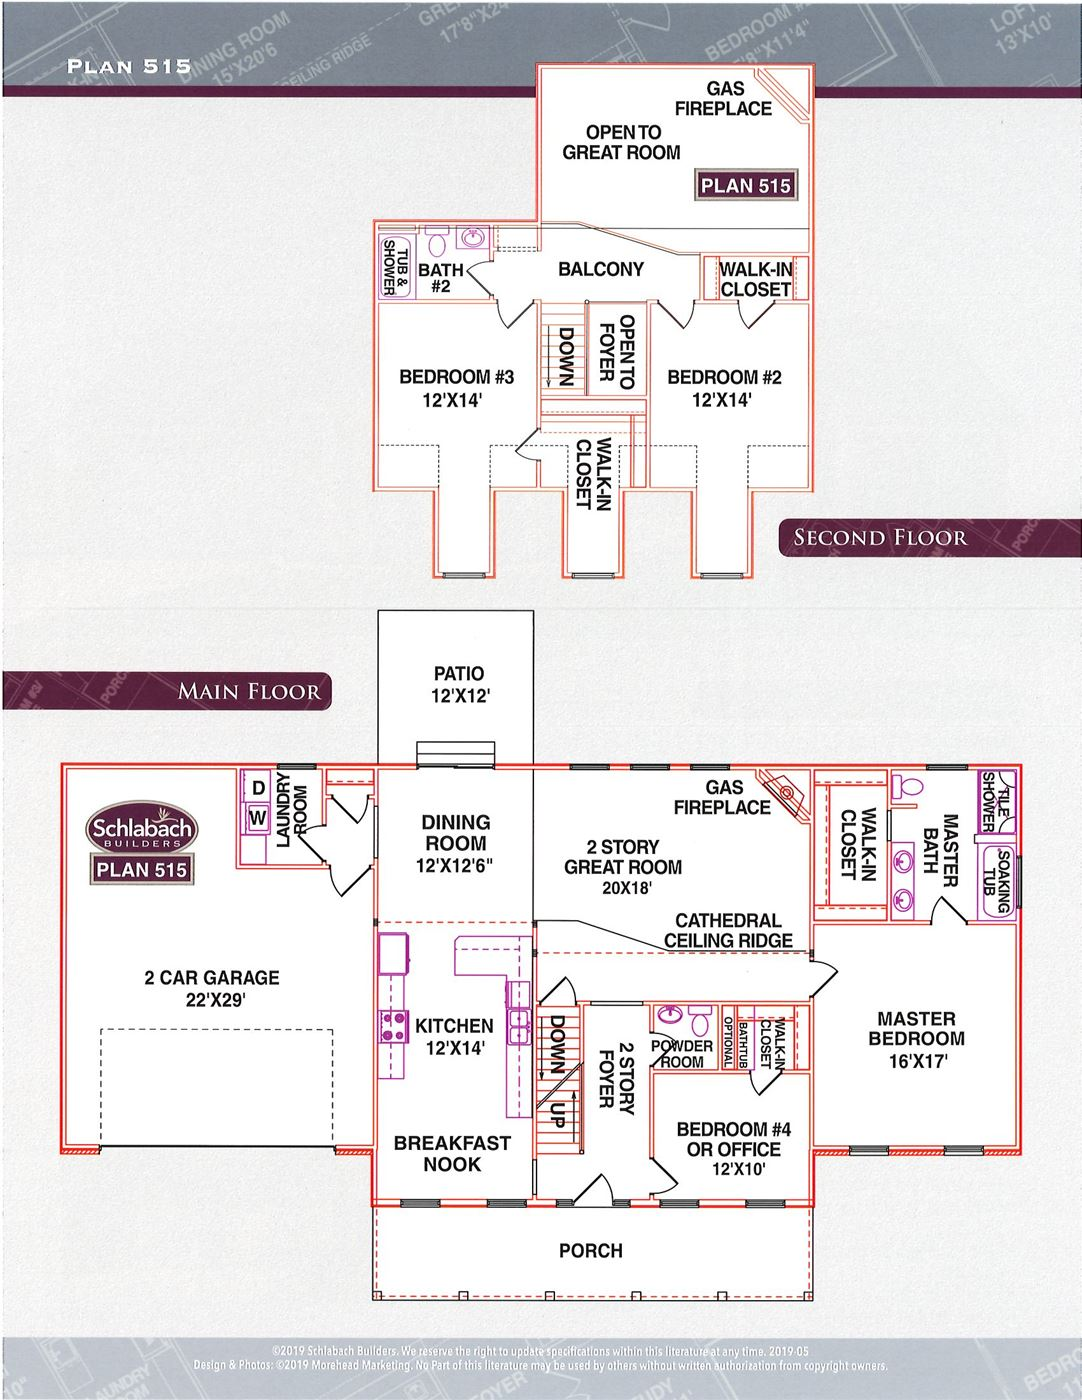 Schlabach Builders Lepi Real Estate Plan 515 2